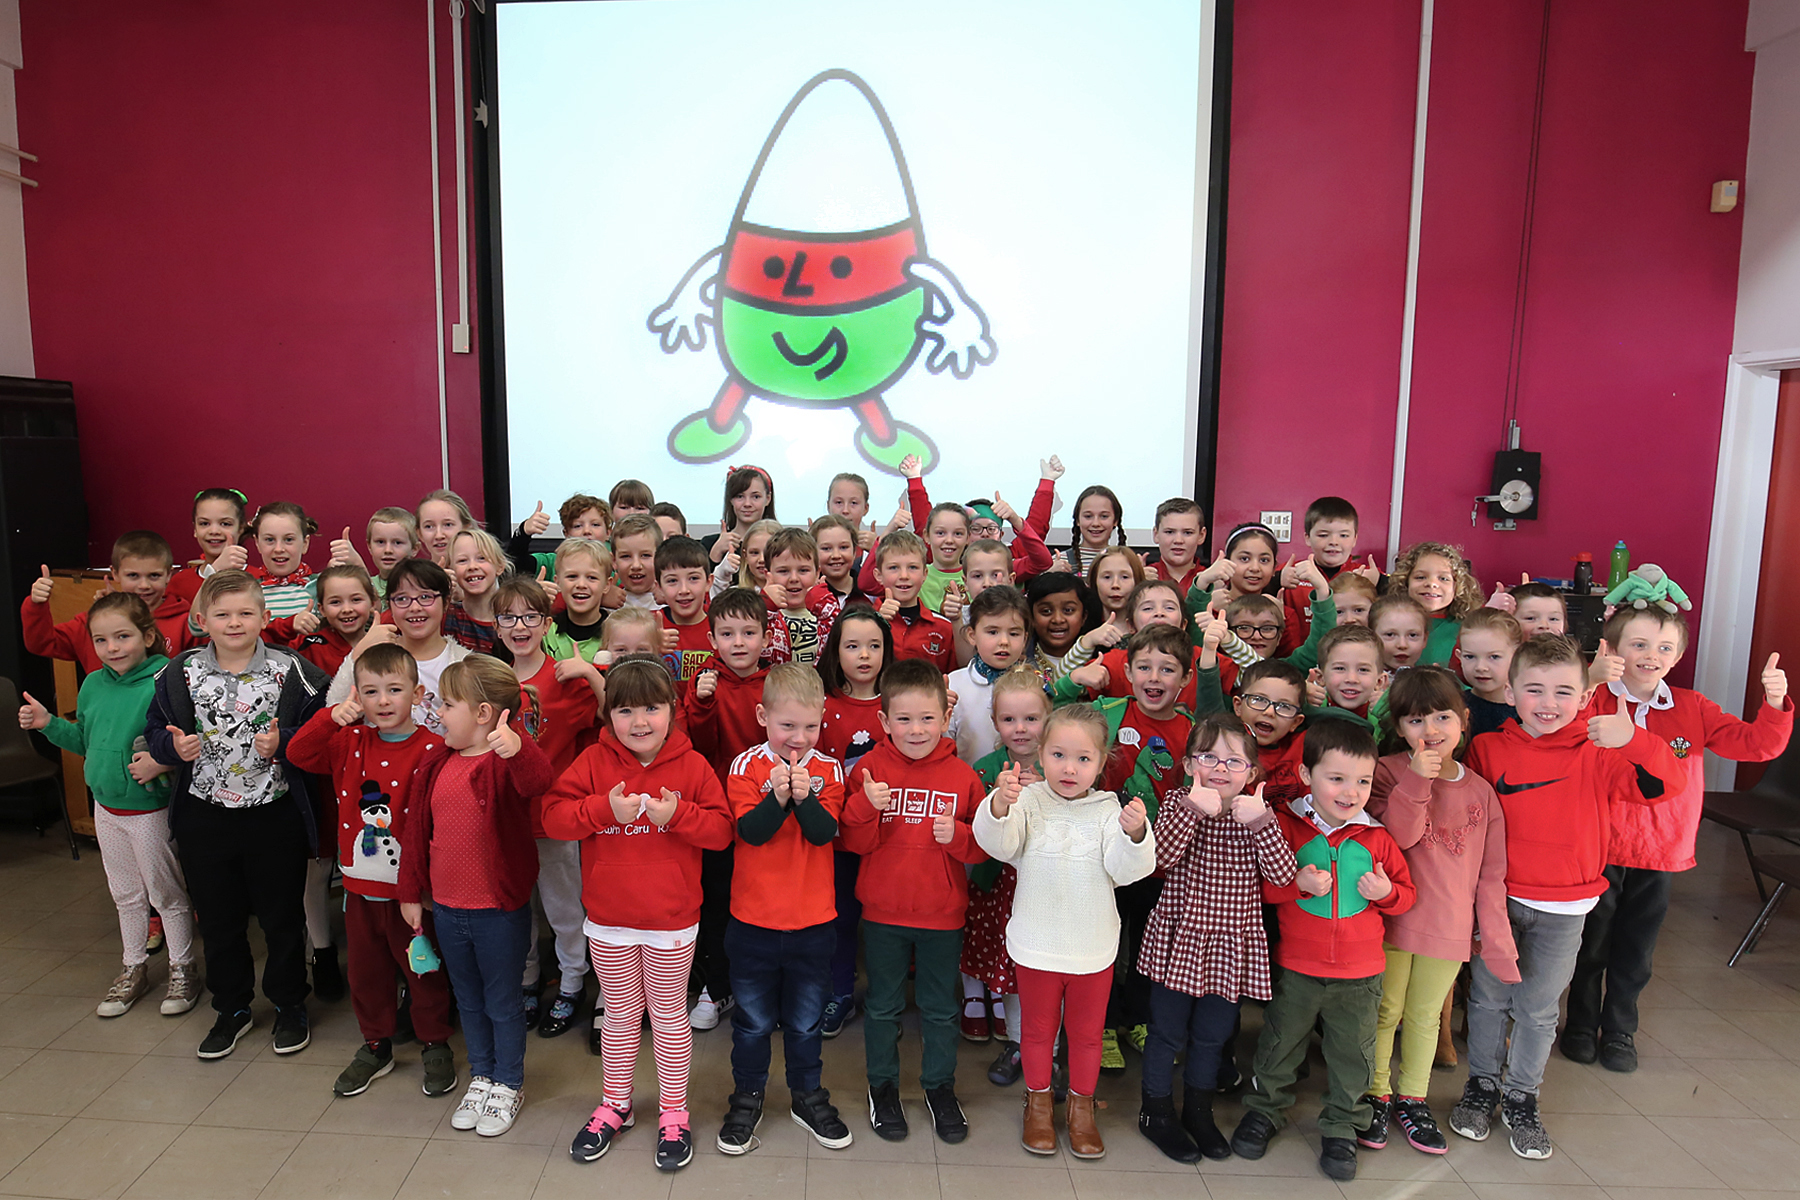 Mr Urdd Copy